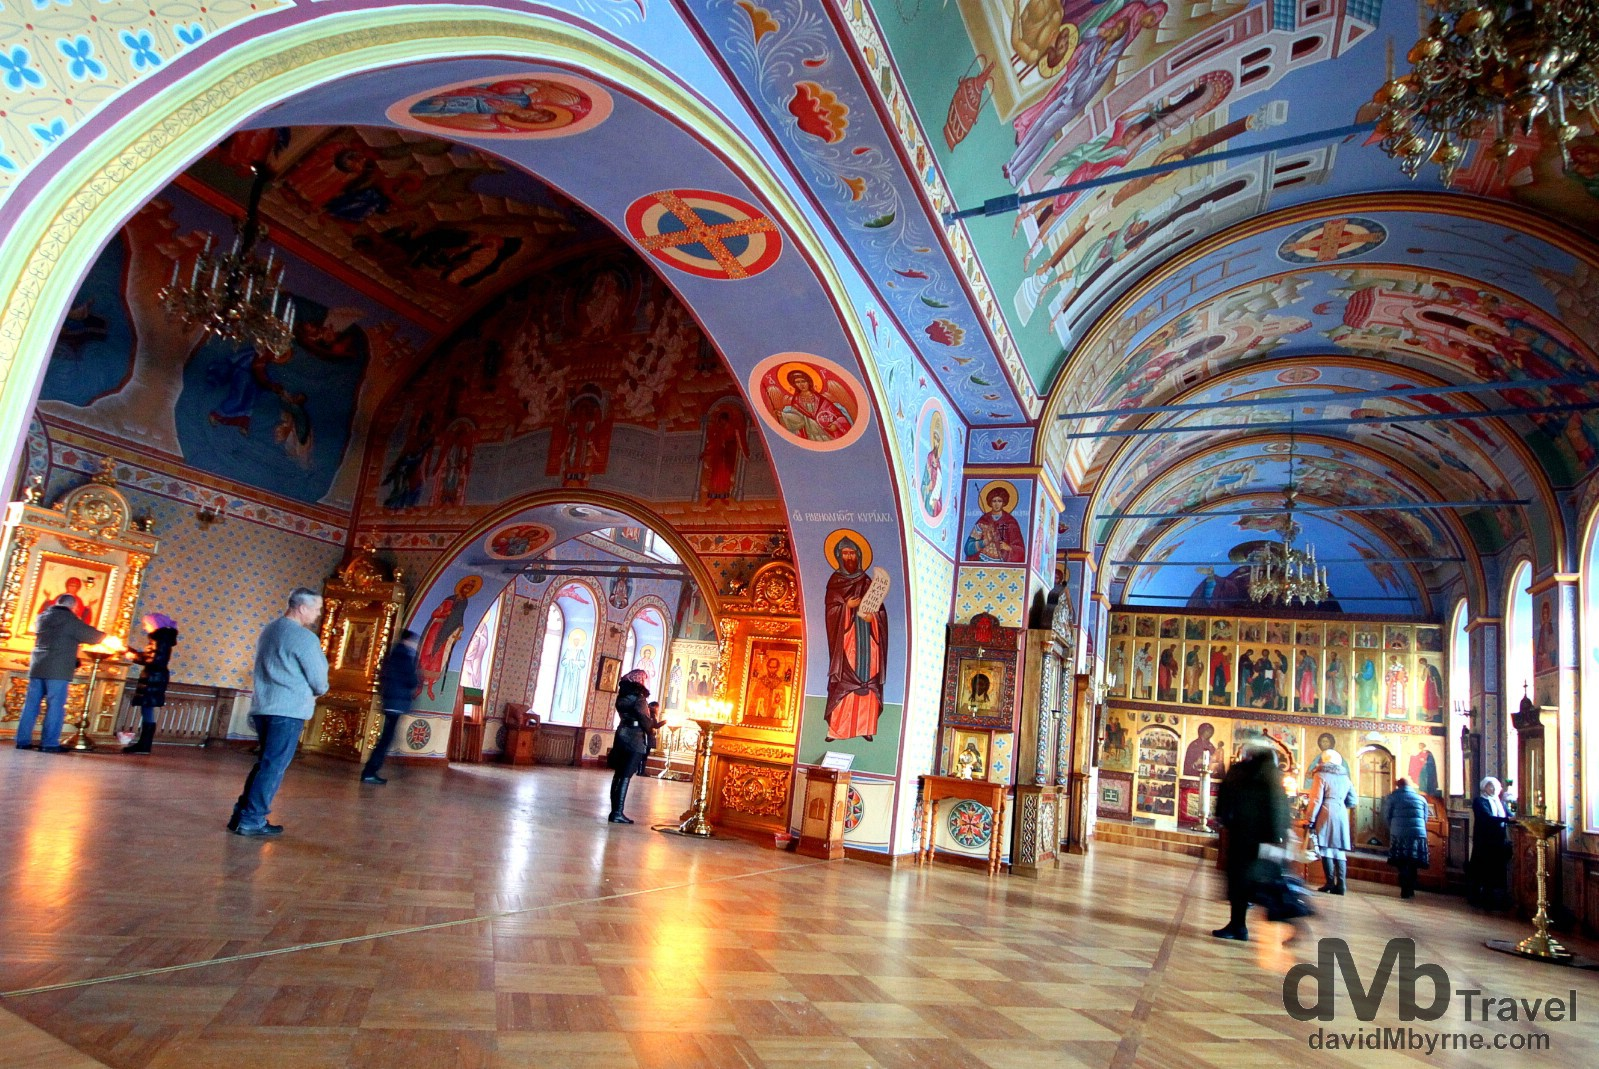 The interior of the Epiphany Cathedral in Tomsk, Siberian Russia. November 11th 2012.